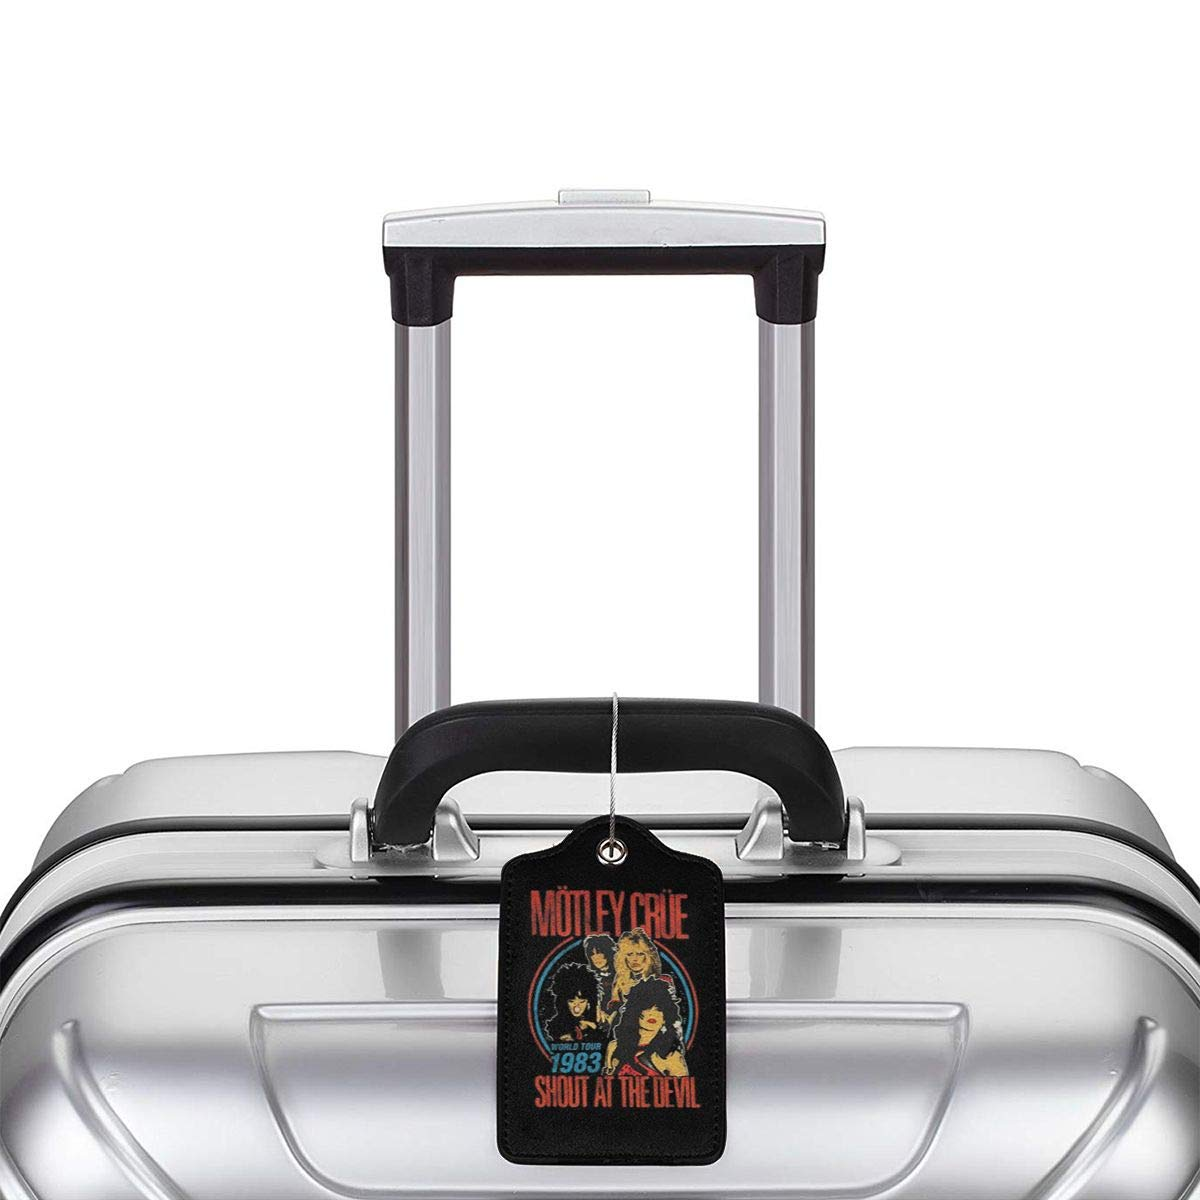 Motley Crue Vintage Shout At The Devil Leather Luggage Tag Travel ID Label For Baggage Suitcase